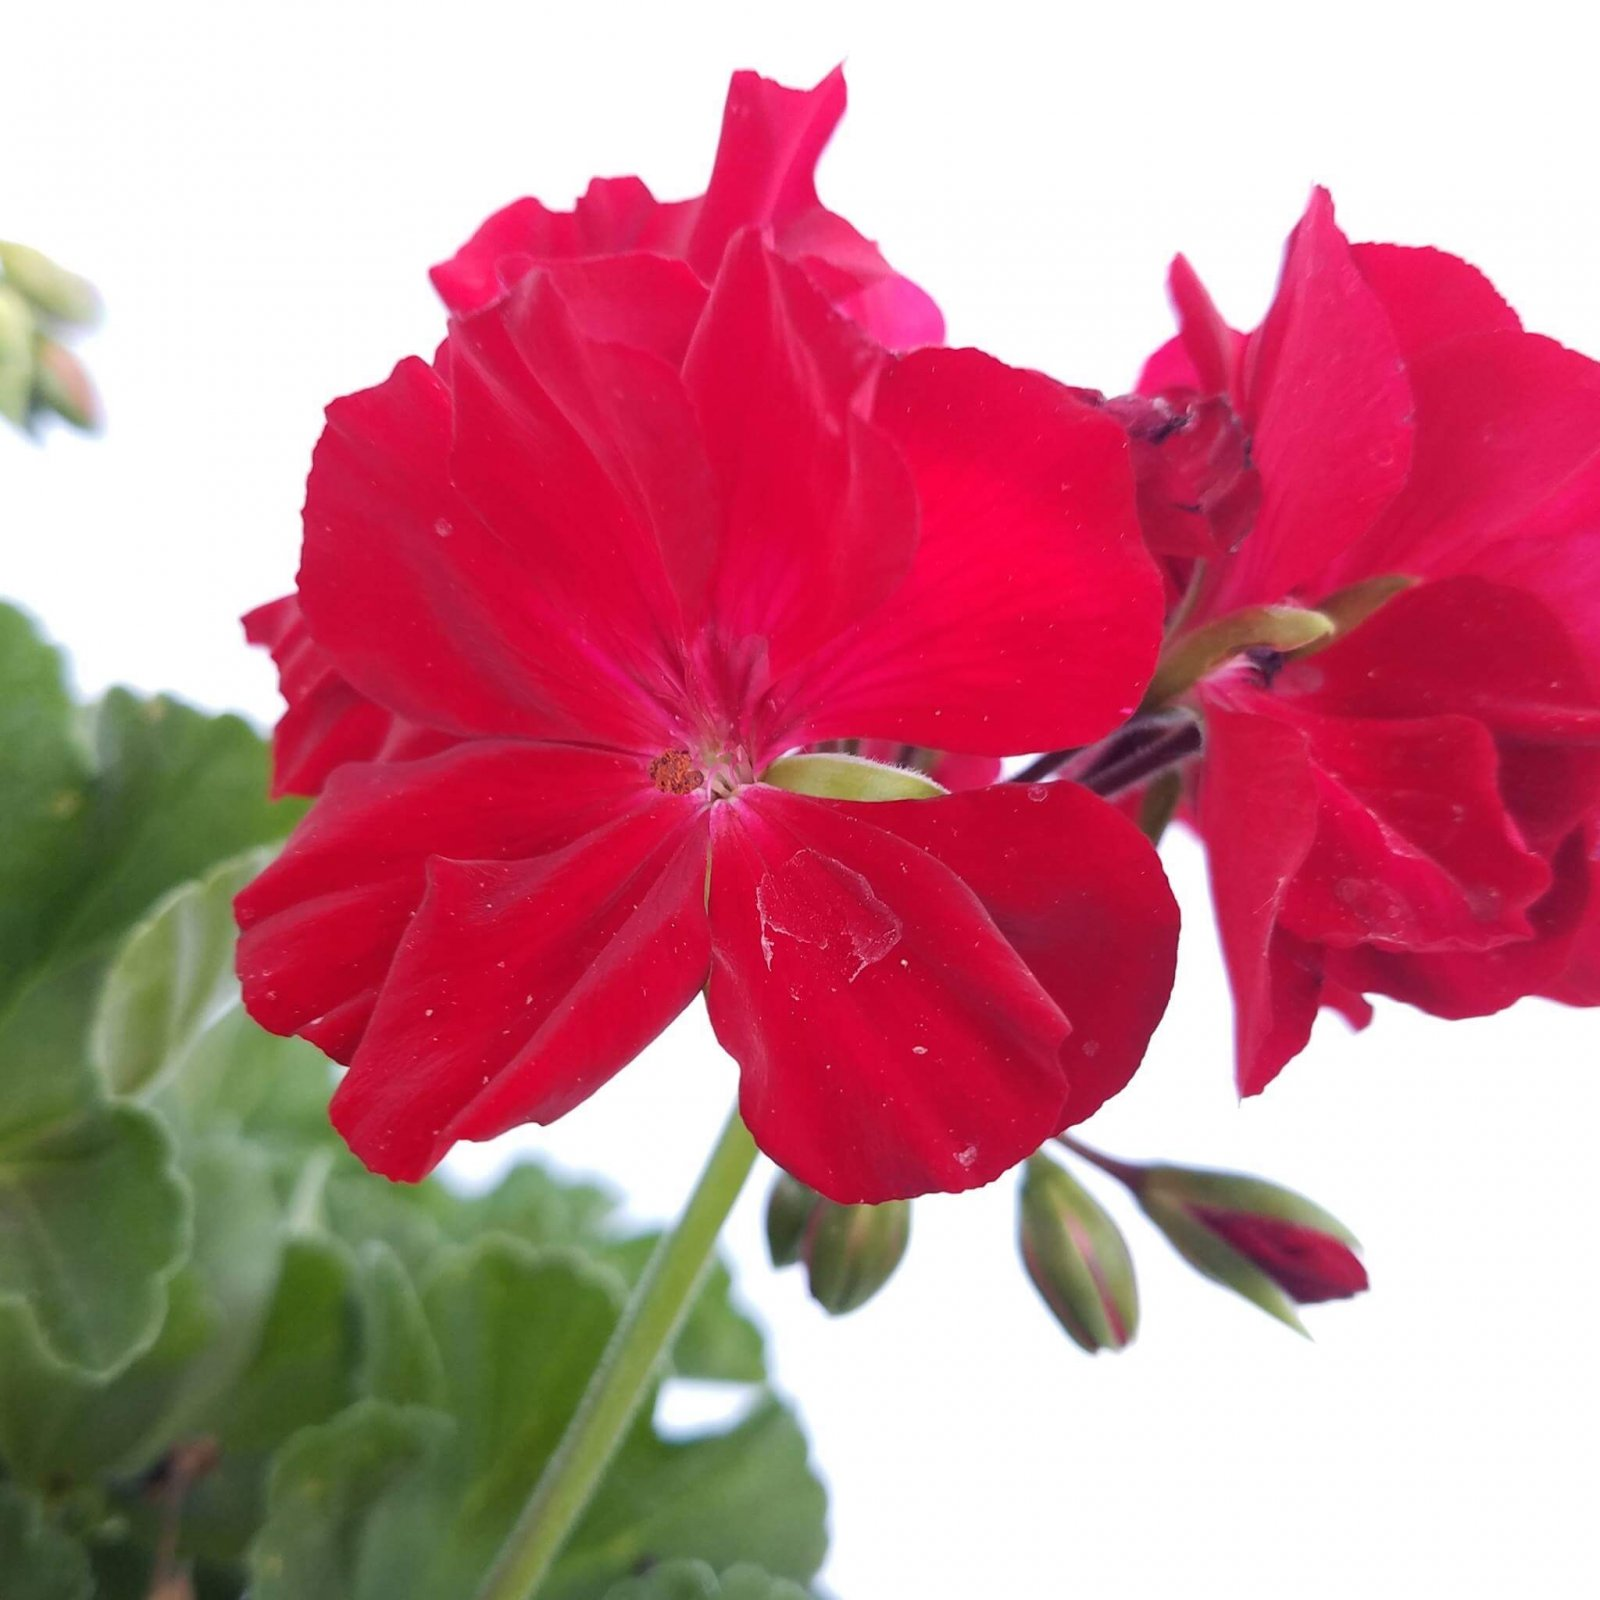 Geranium (ivy) 'Calliope Dark Red' - 6 1/2